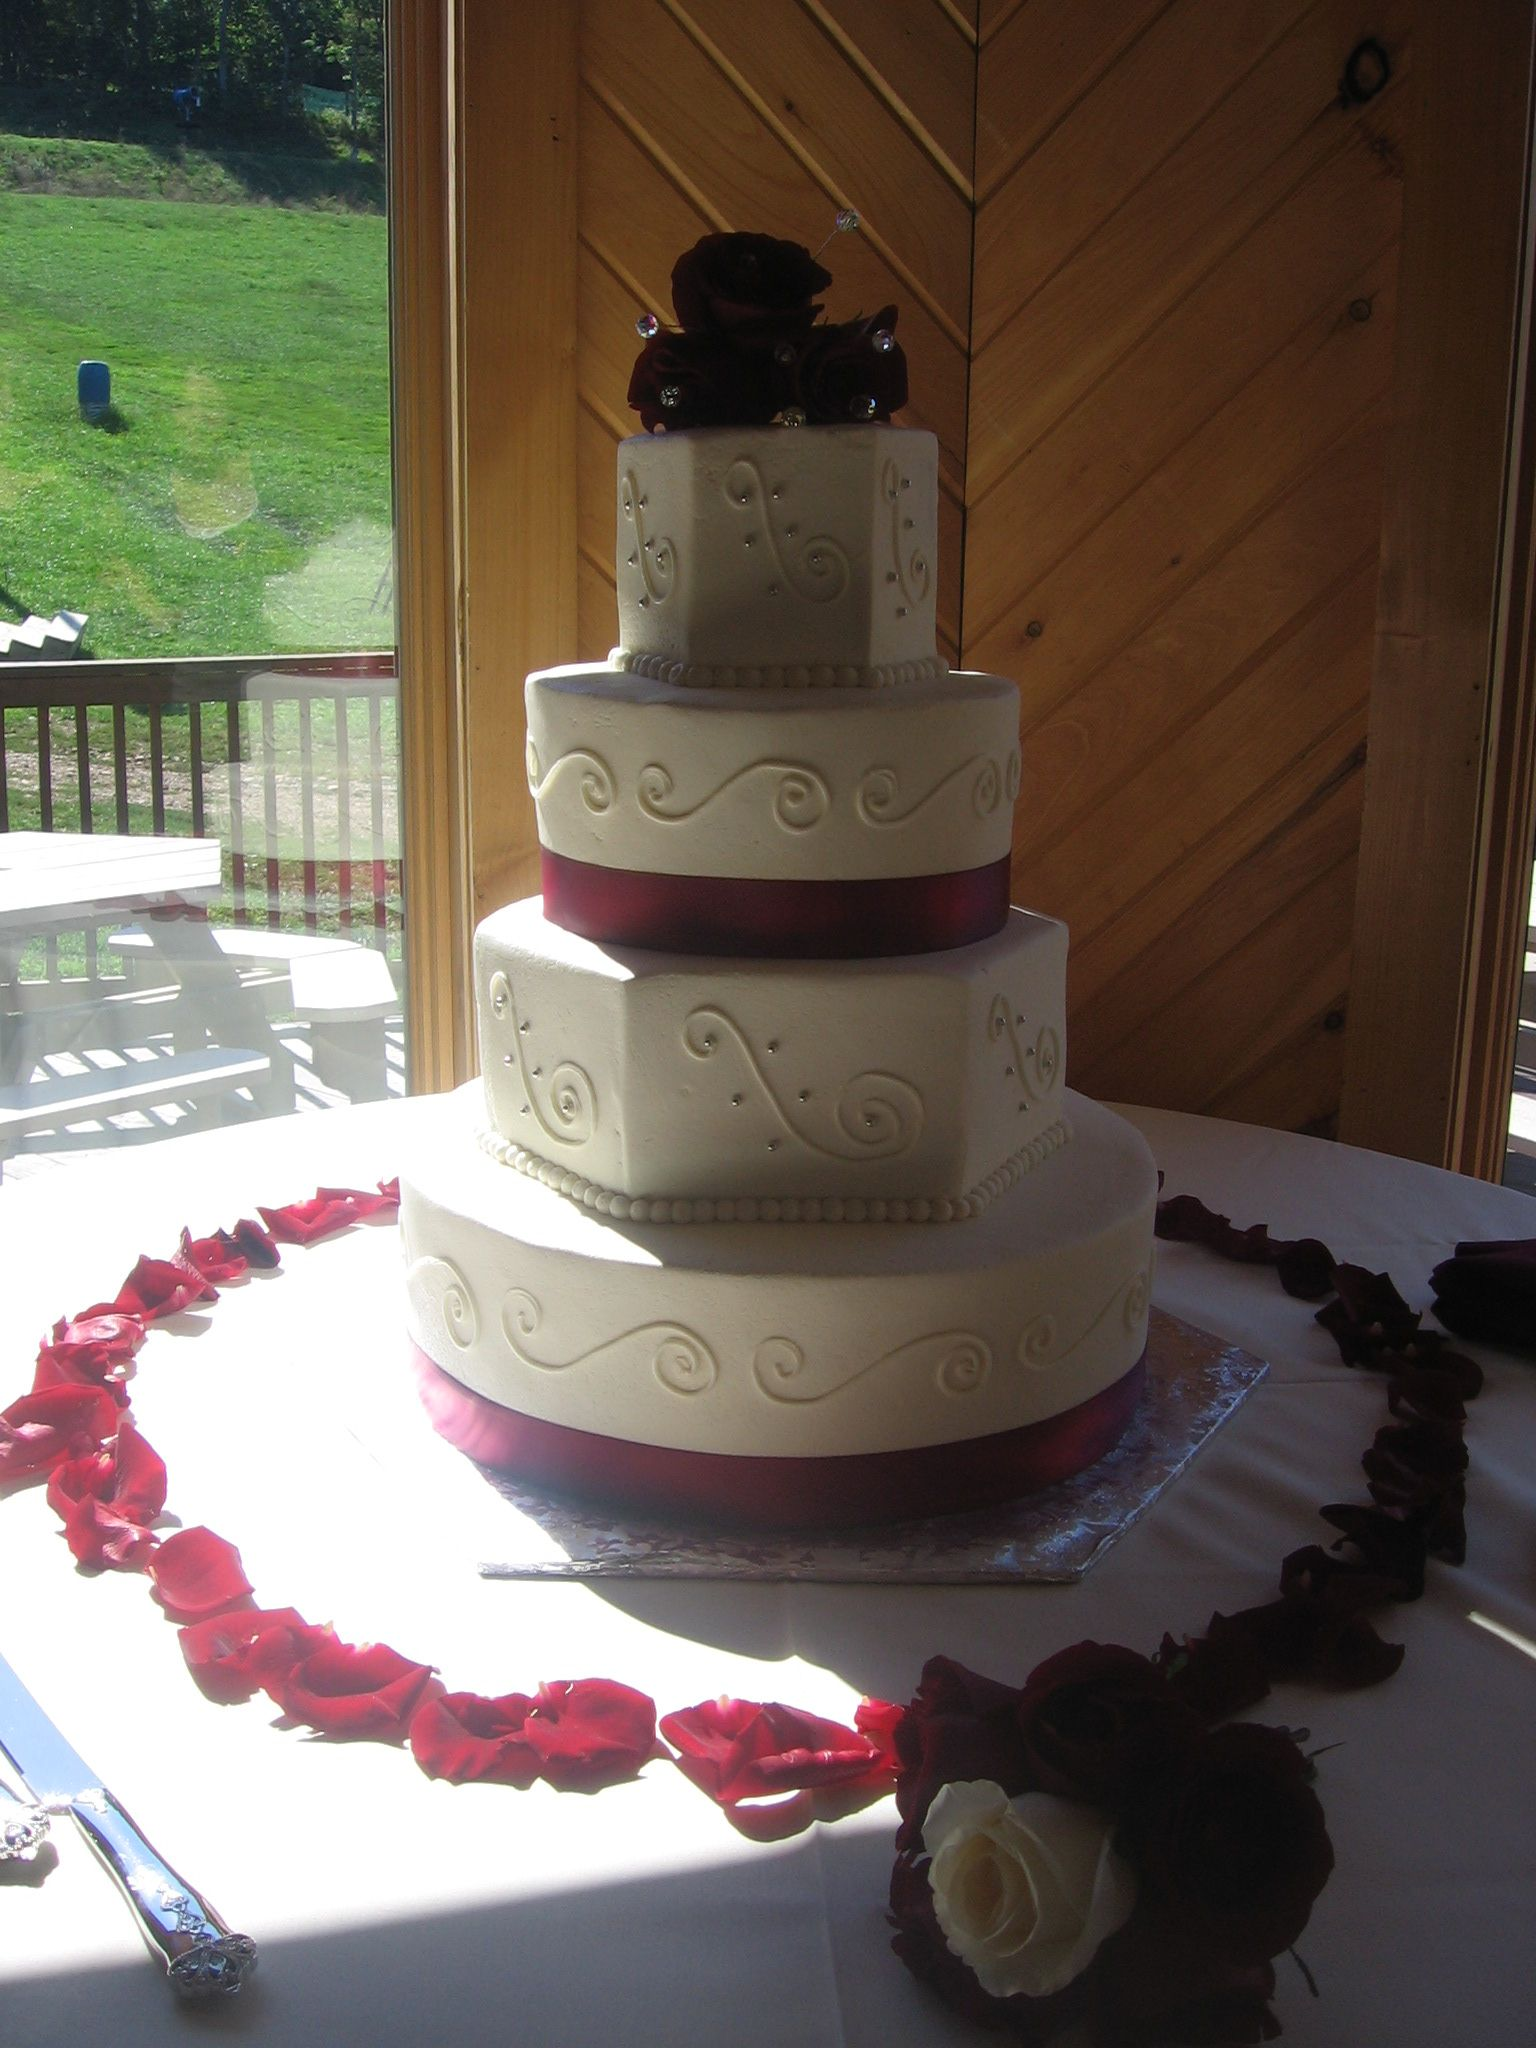 3 Tier Buttercream Wedding Cake By Main Street Sweets Bakery Out Of